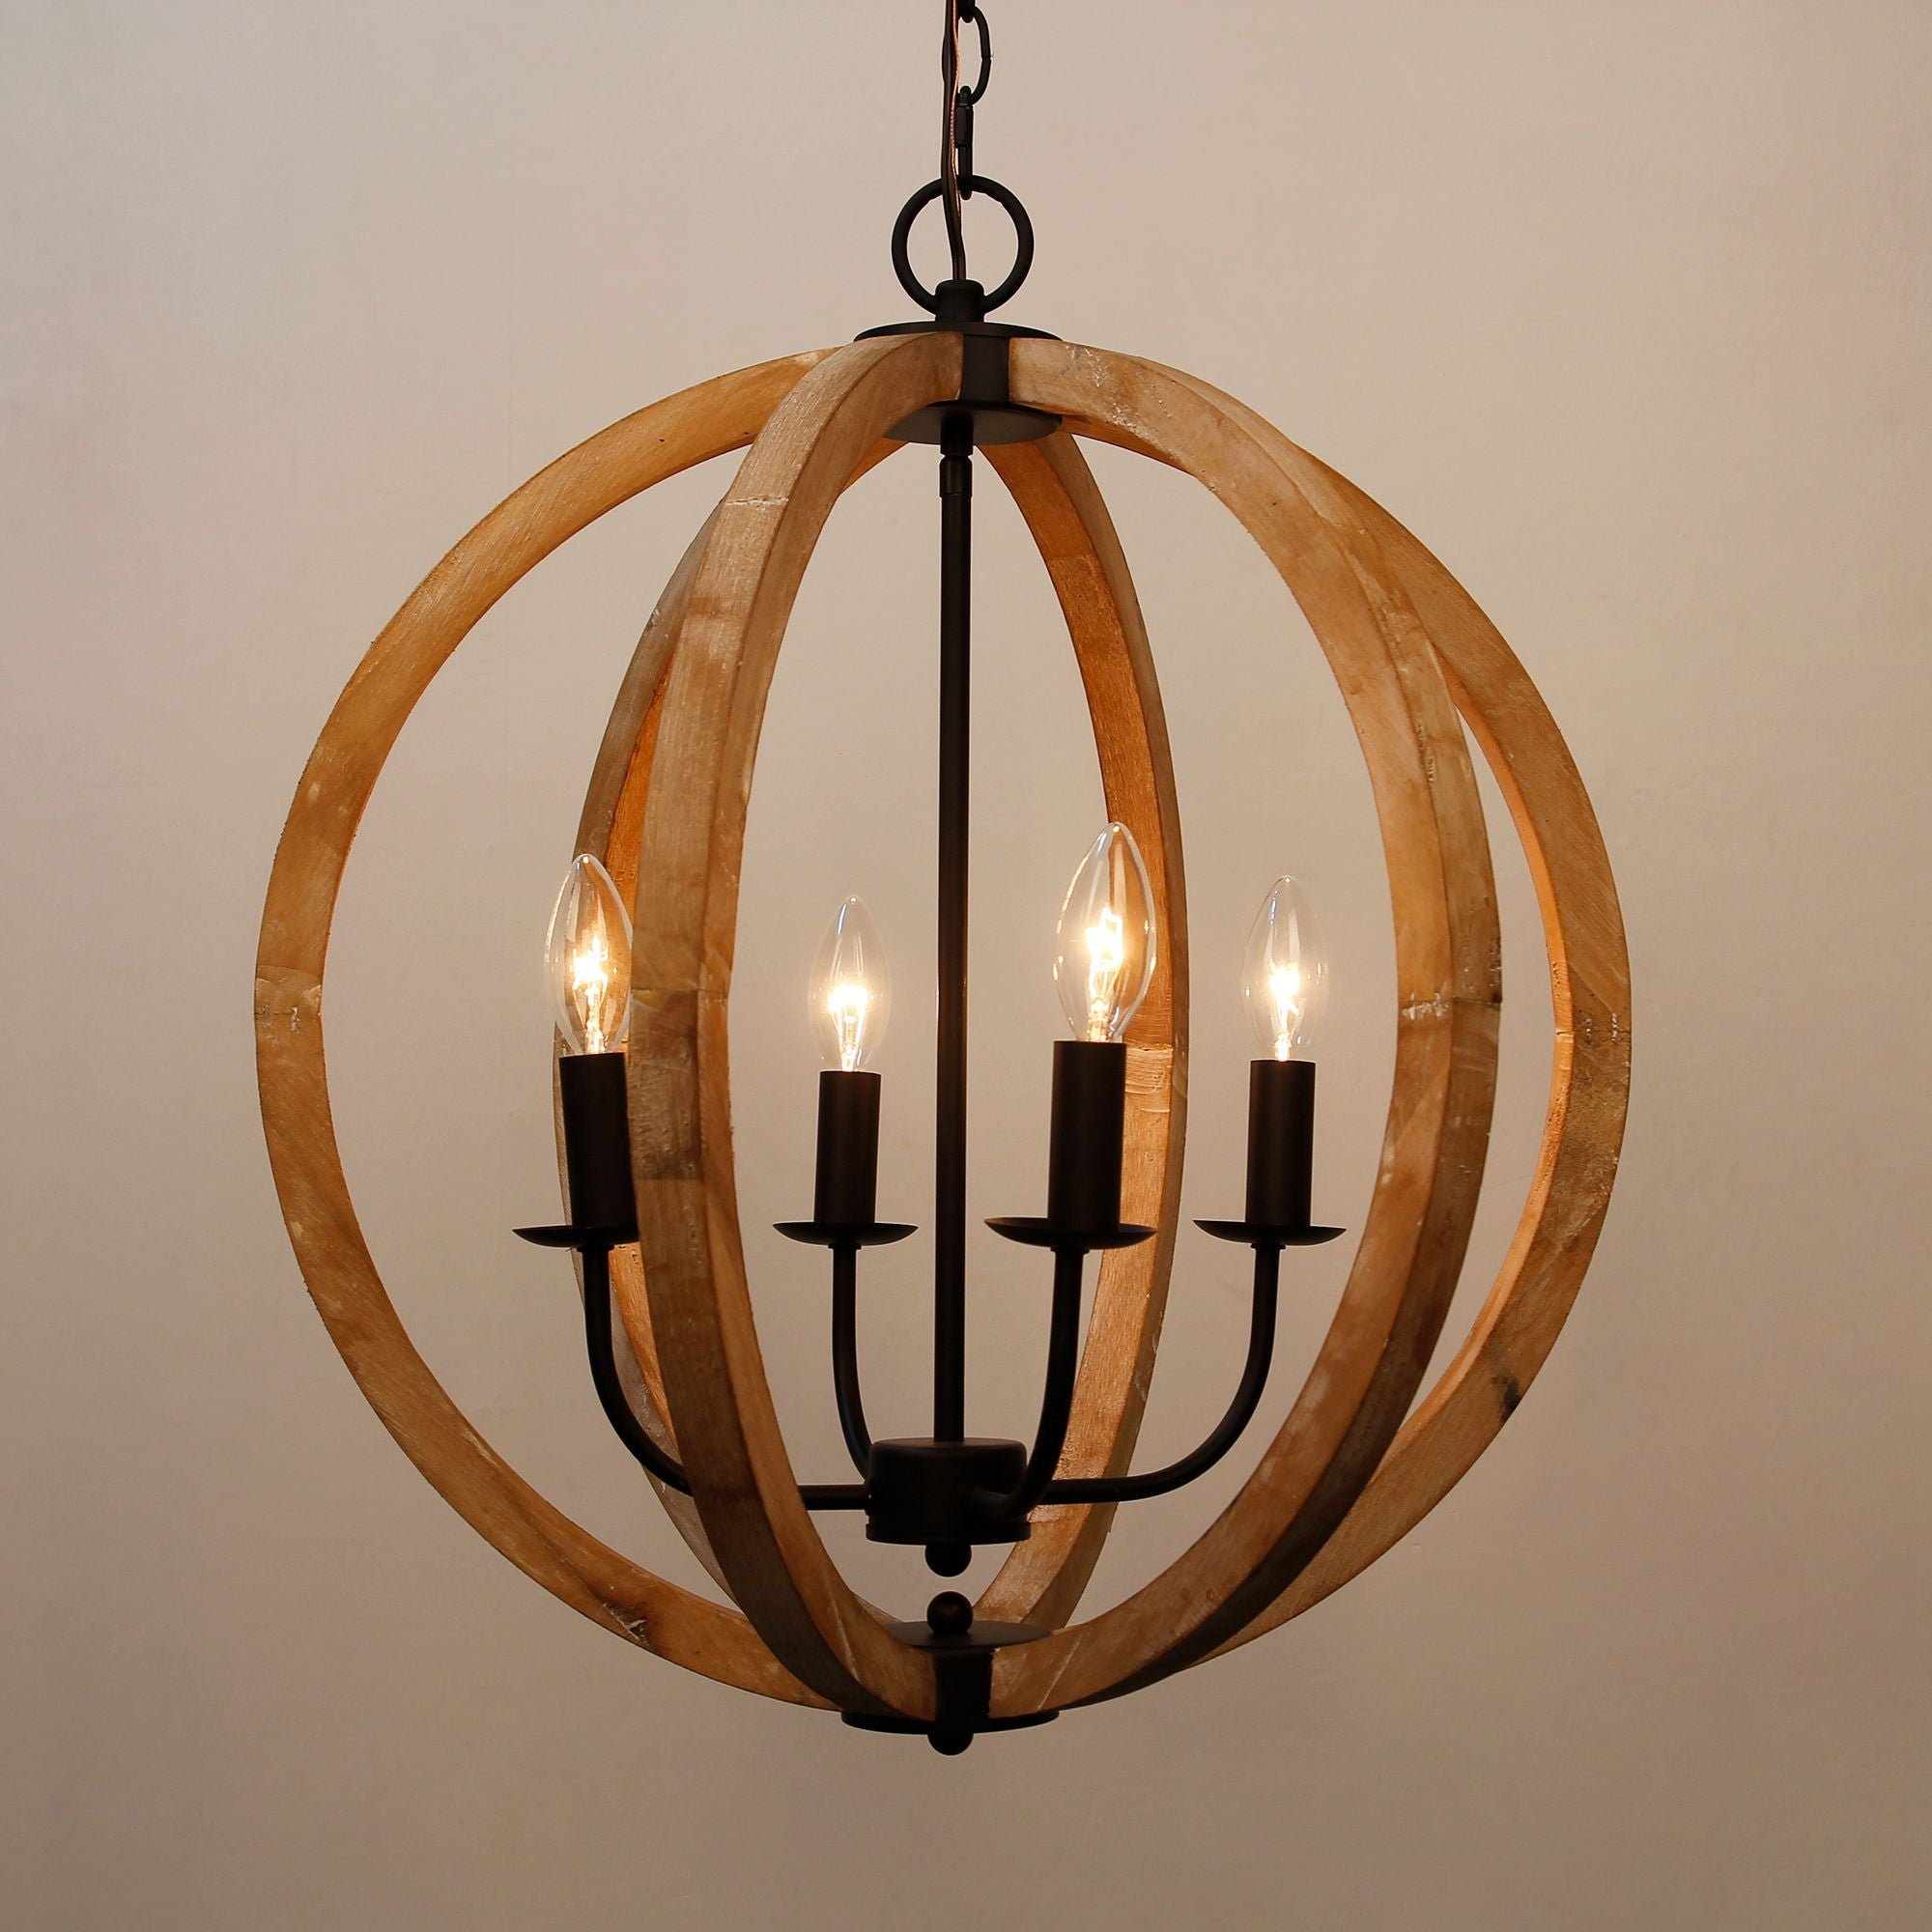 Antique 4 light distressed wood orb chandelier free shipping today antique 4 light distressed wood orb chandelier free shipping today overstock 26422657 arubaitofo Gallery